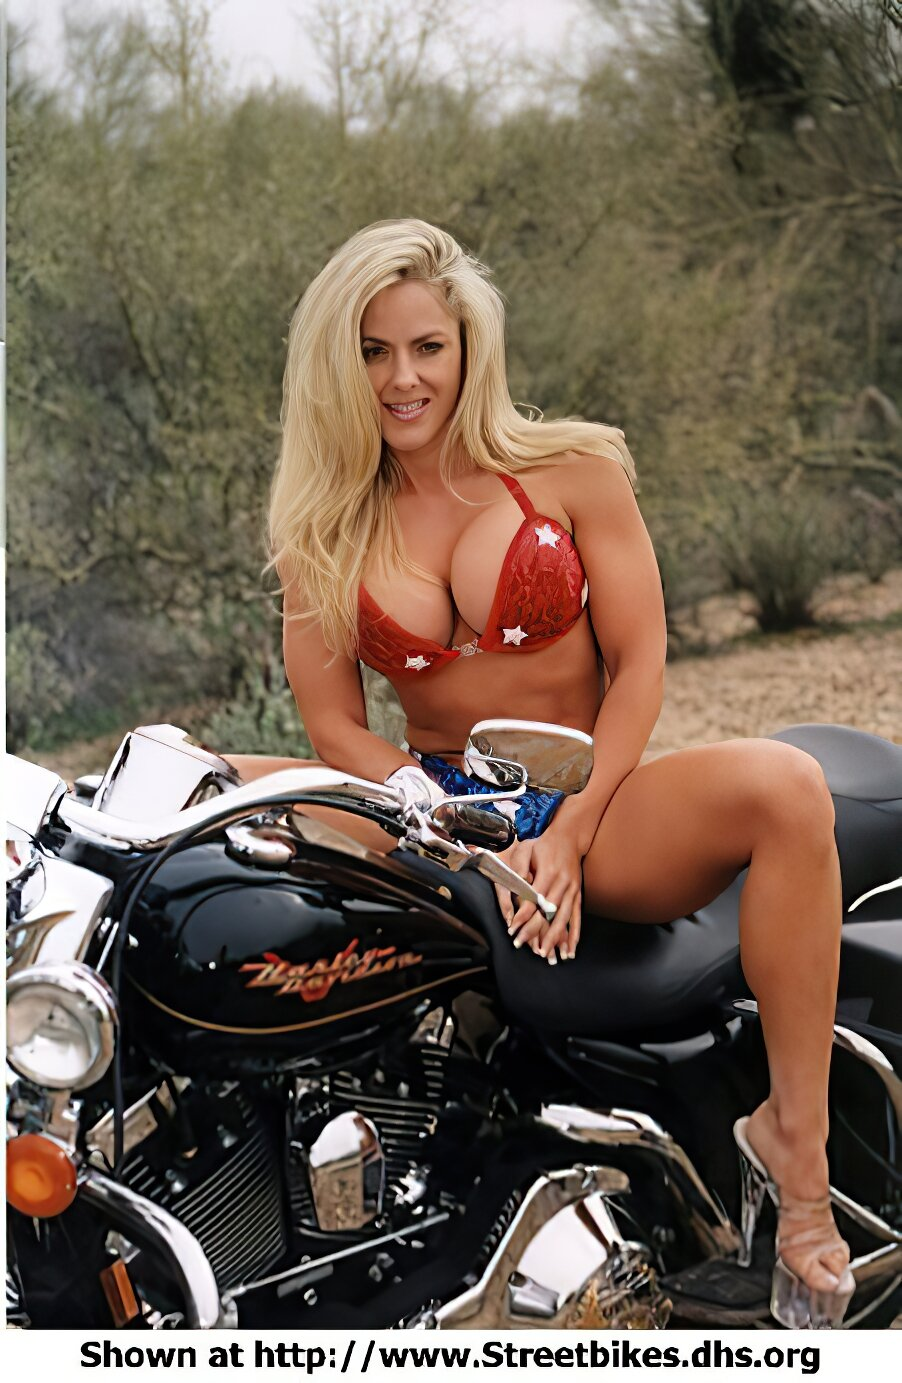 Harley-Davidson Unknown (HD) - ID: 1416